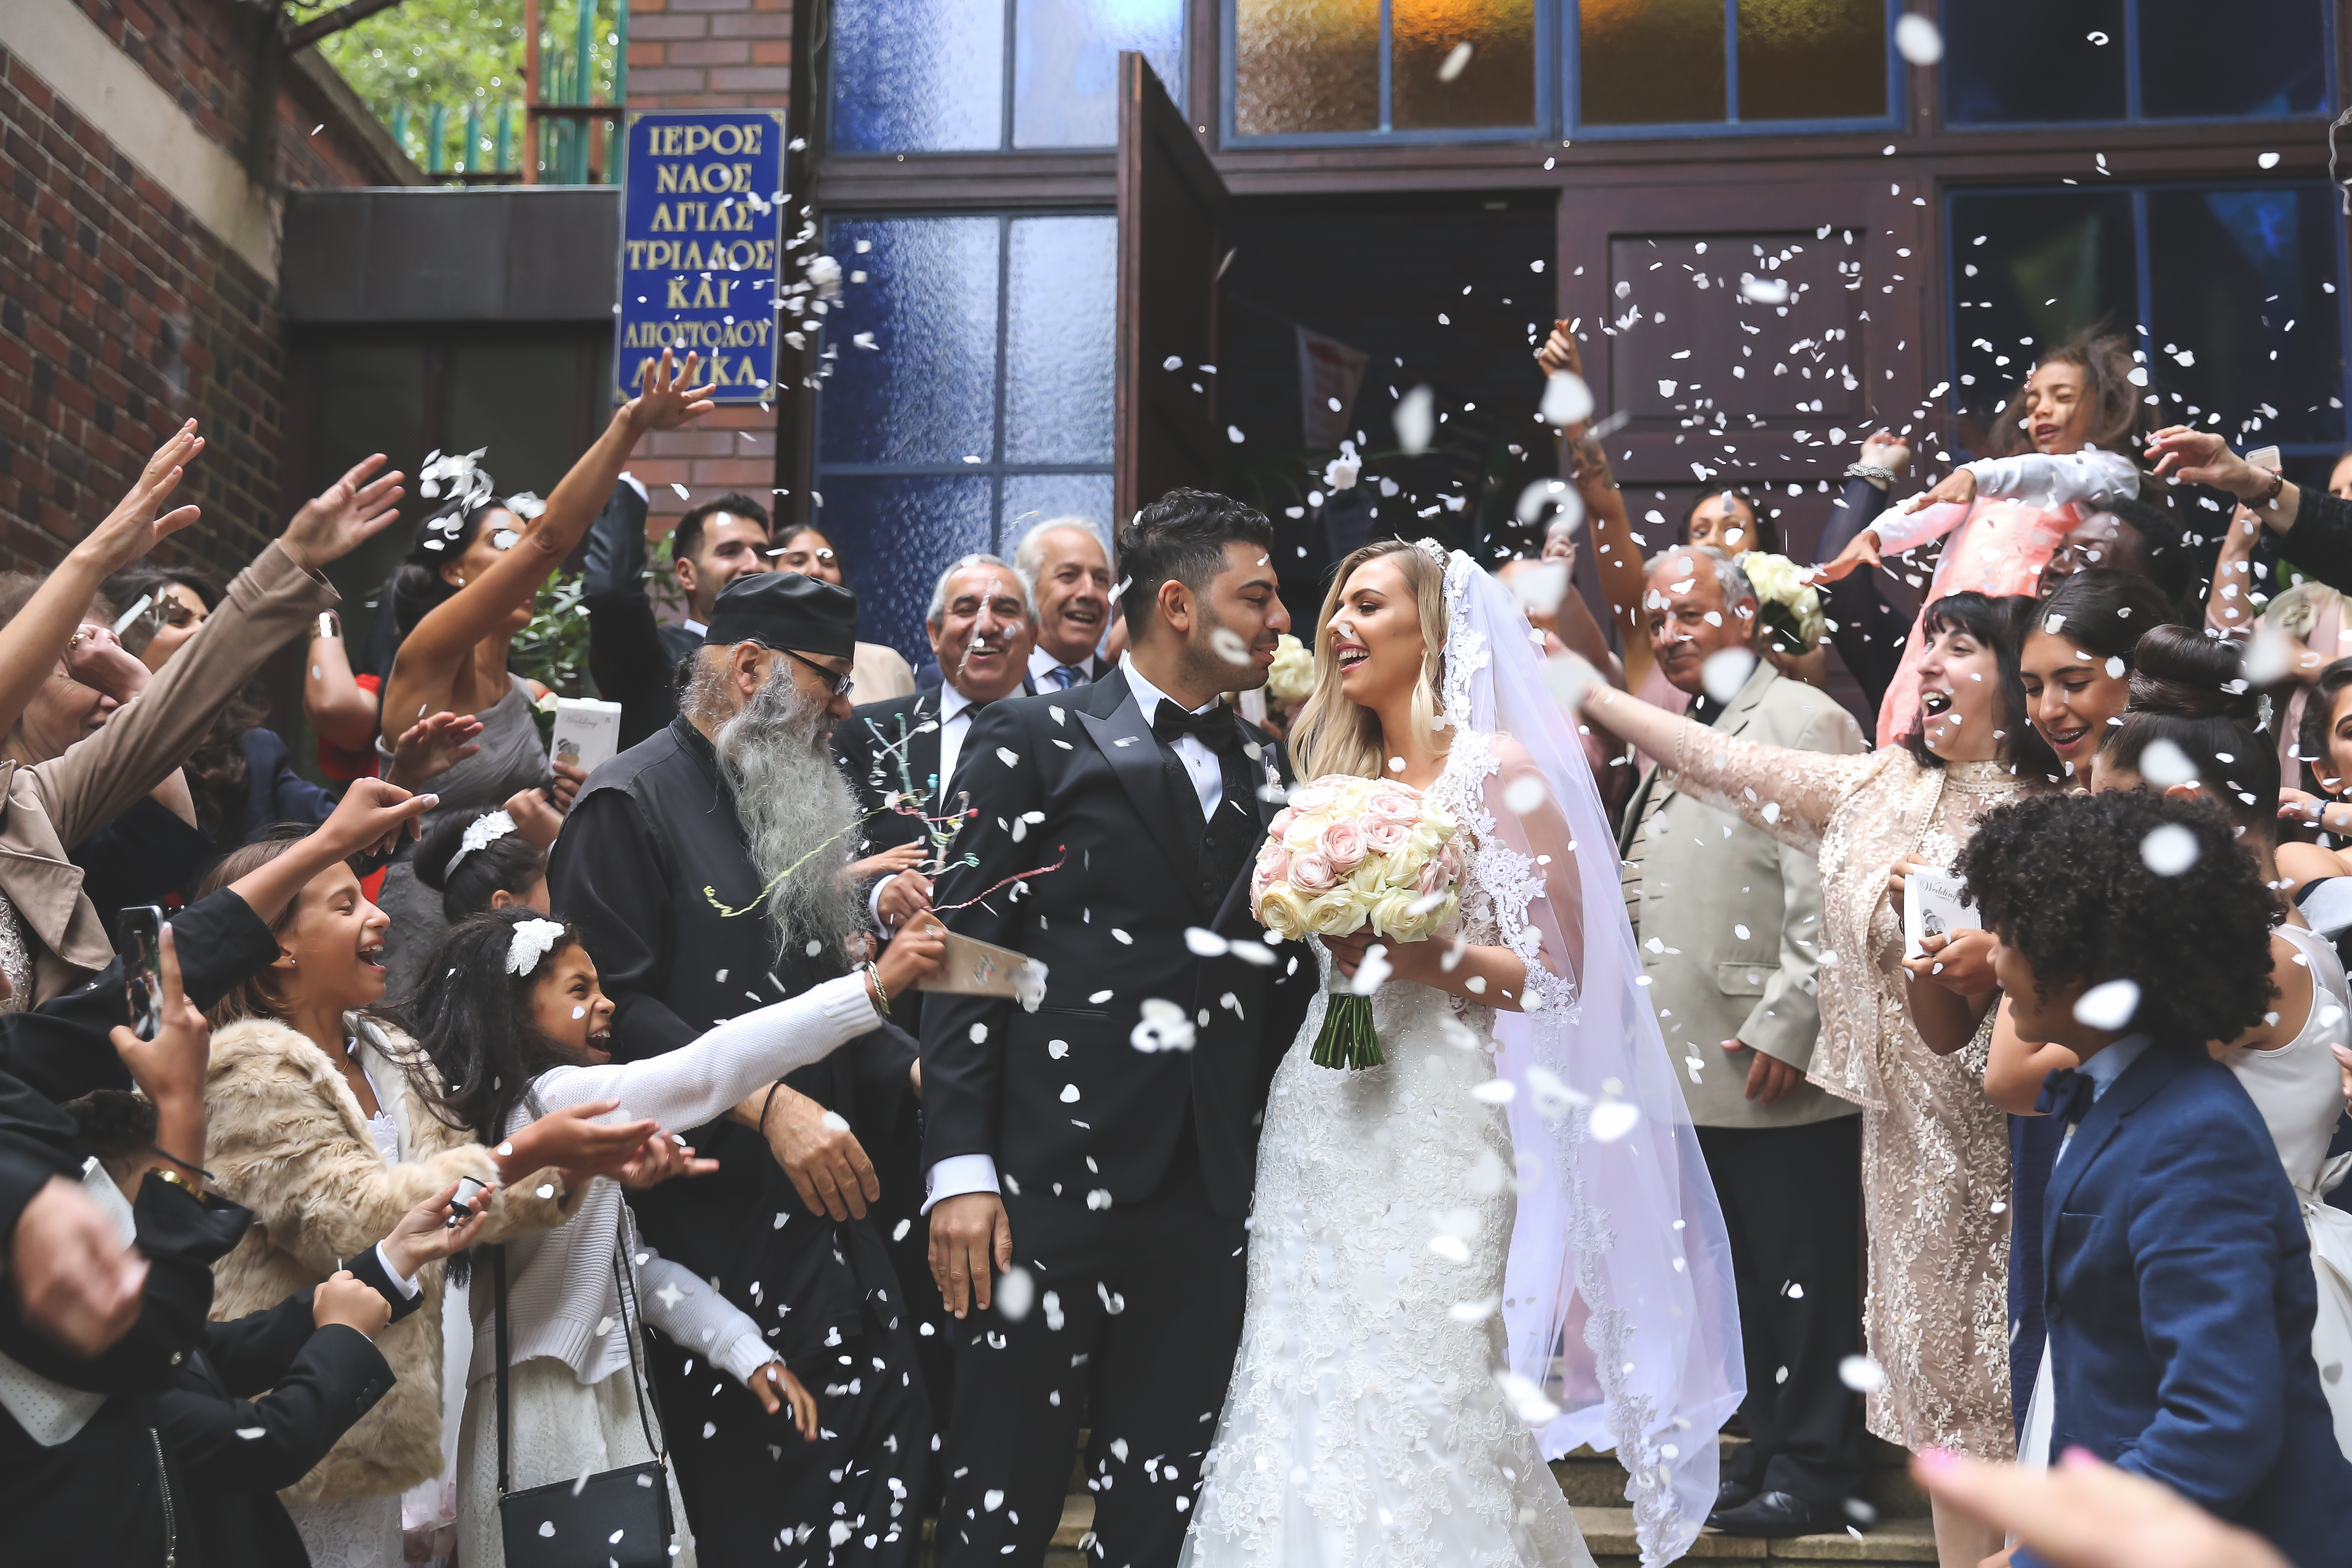 confetti to the newly weds